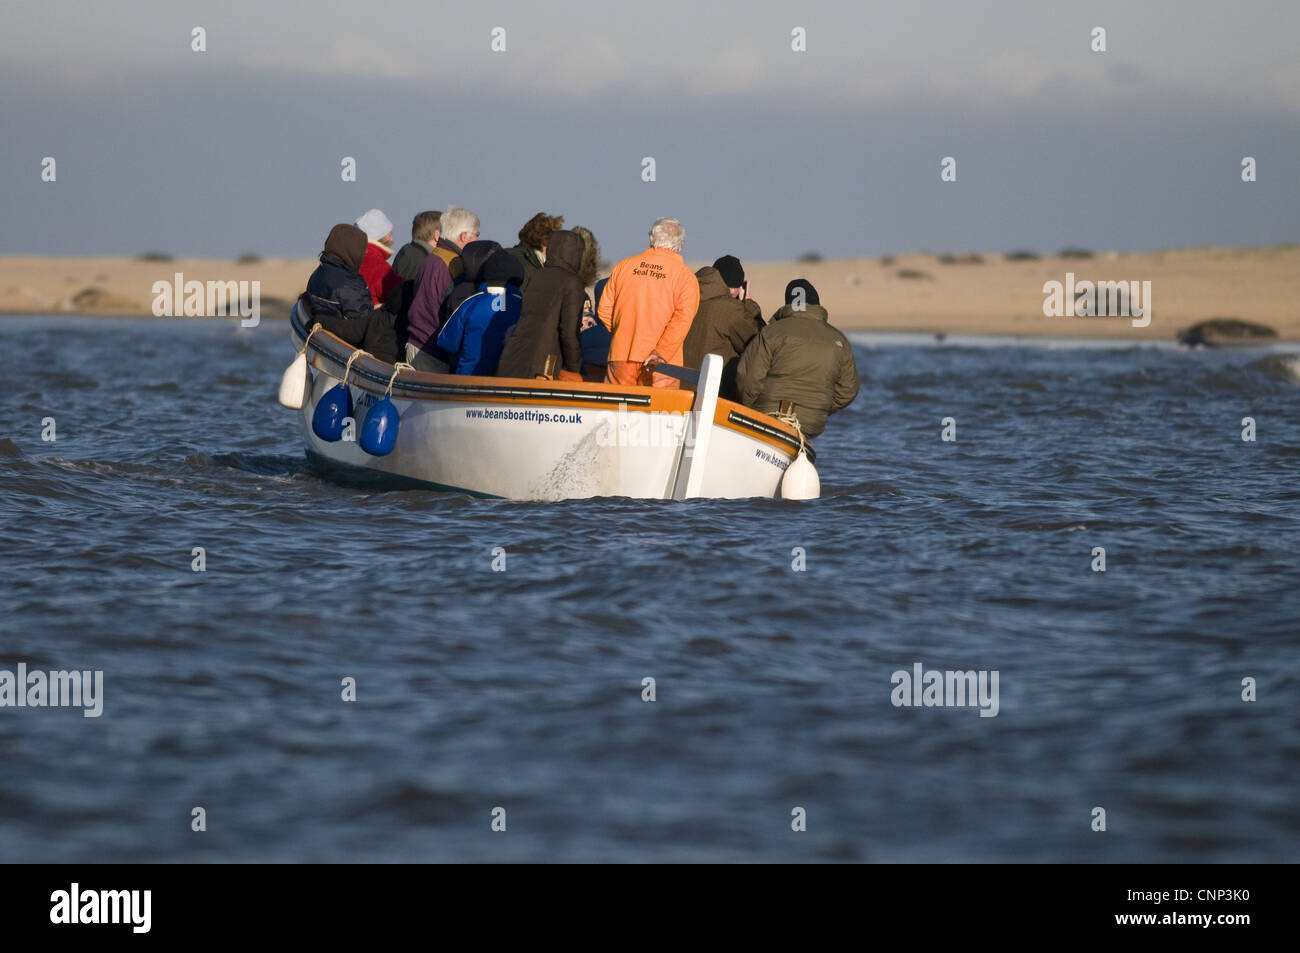 Seal watchers in boat, Blakeney, Norfolk, England, november - Stock Image